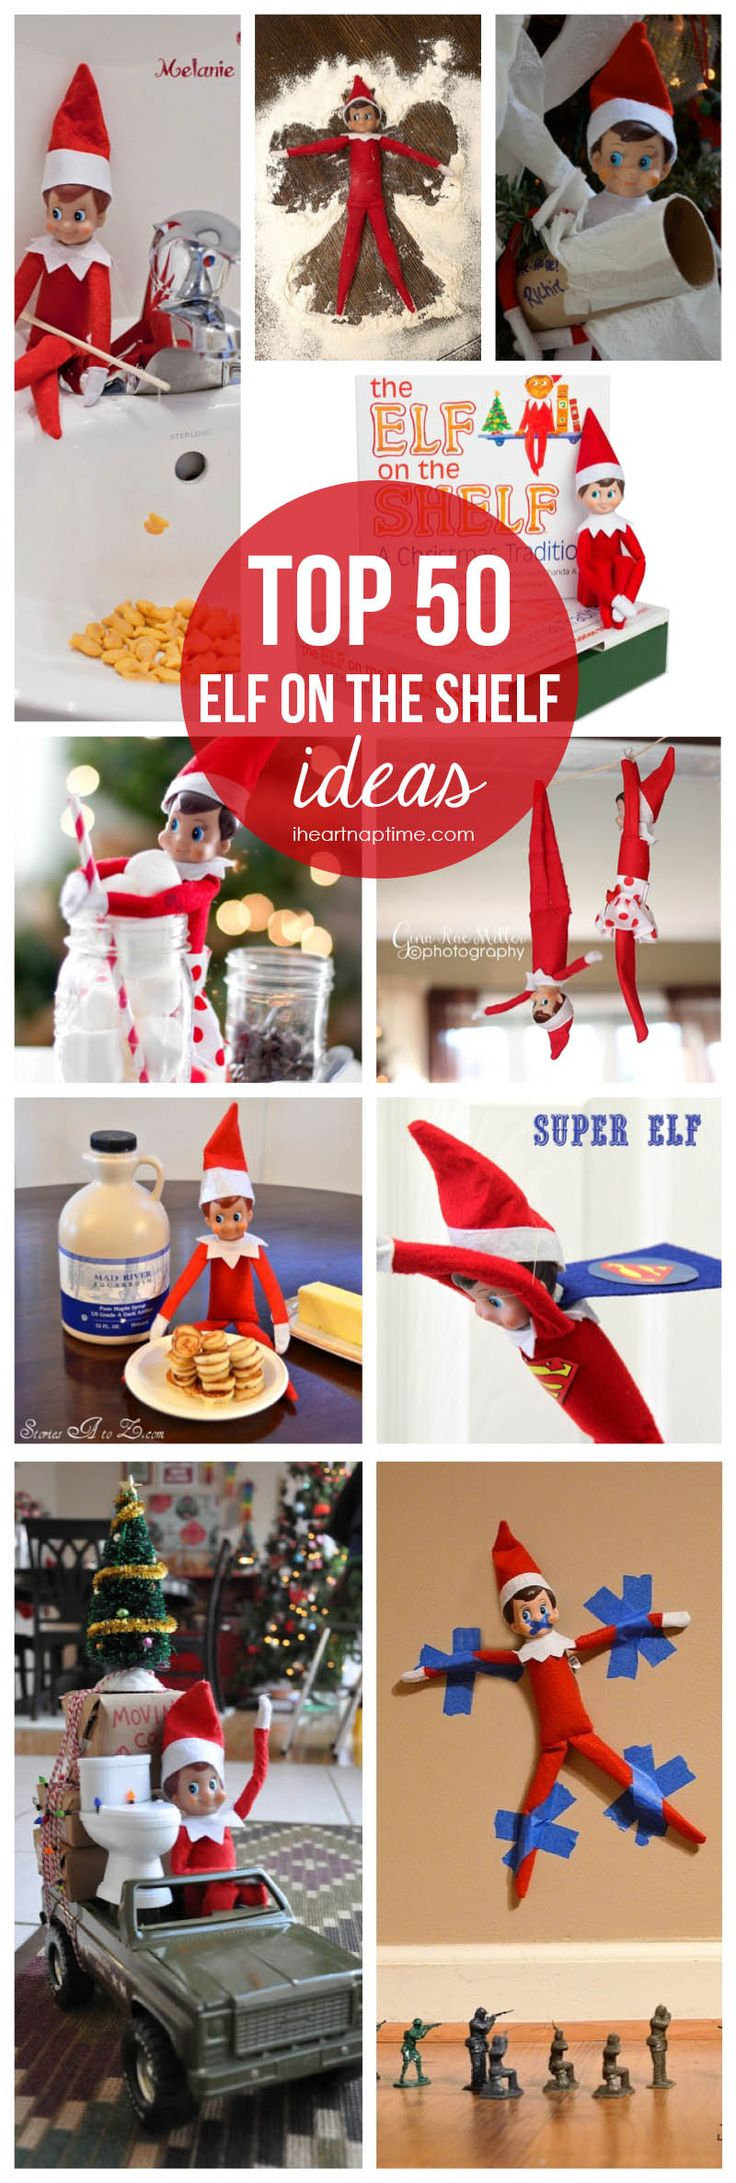 Top 50 Elf on the Shelf ideas on iheartnaptime.com ...these are the best Ive seen!